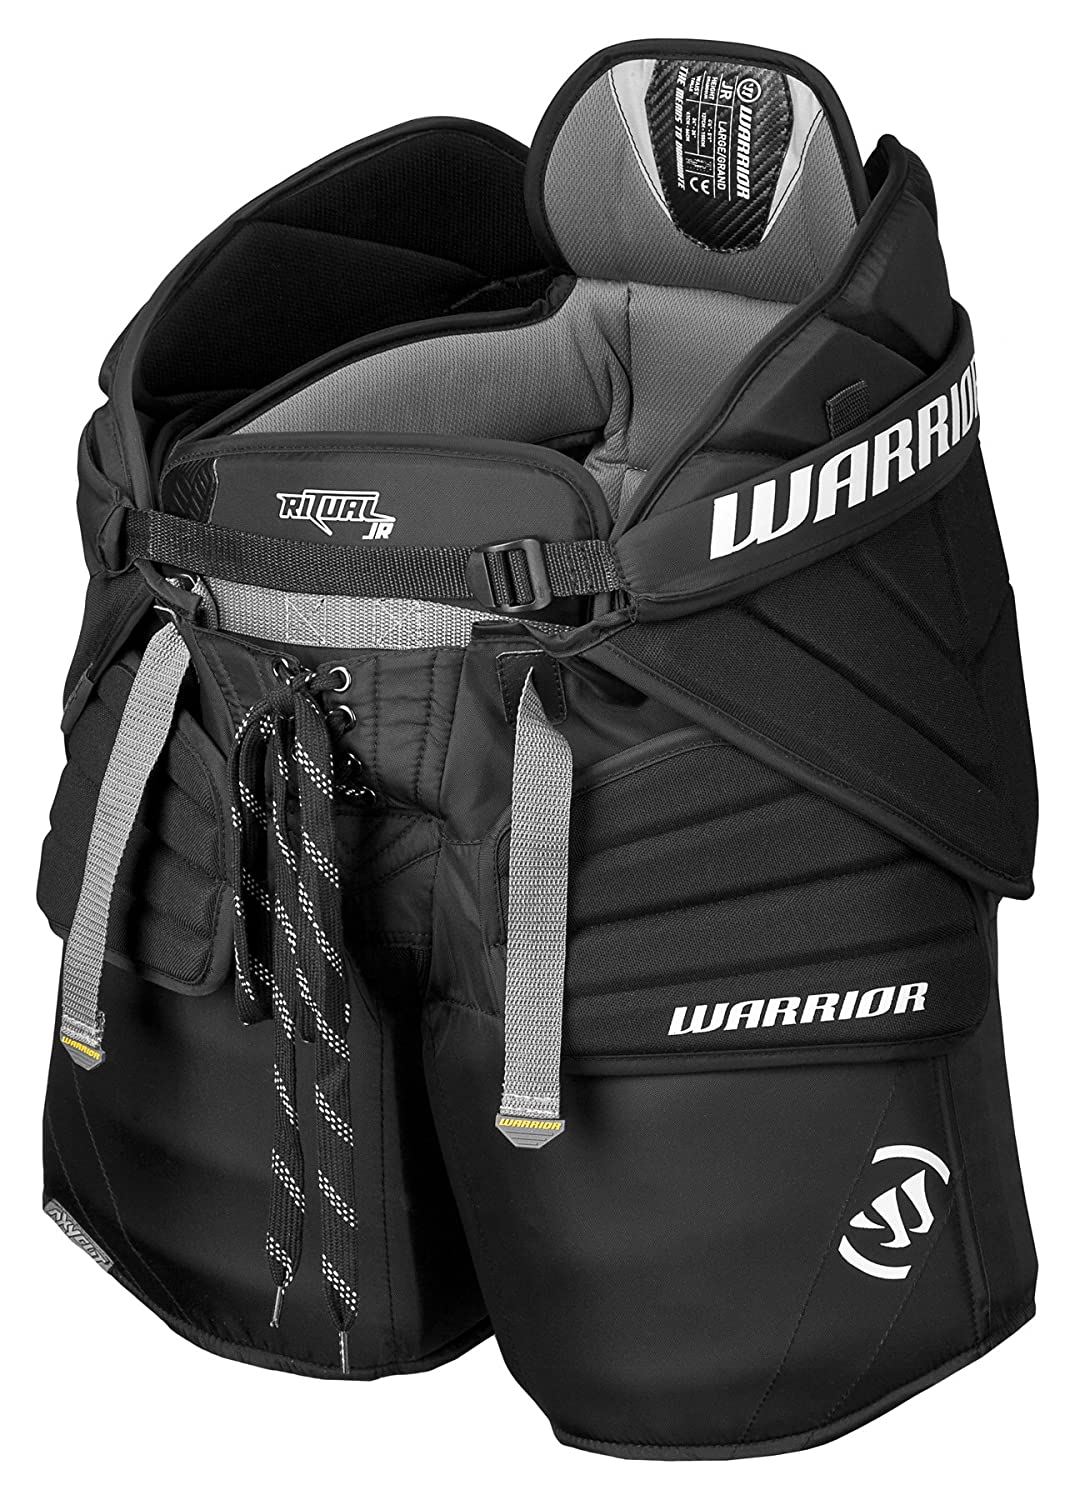 Warrior Junior Ritual Goalie Hockey Pants, Black, Large/X-Large GPNTJR3 L/XL